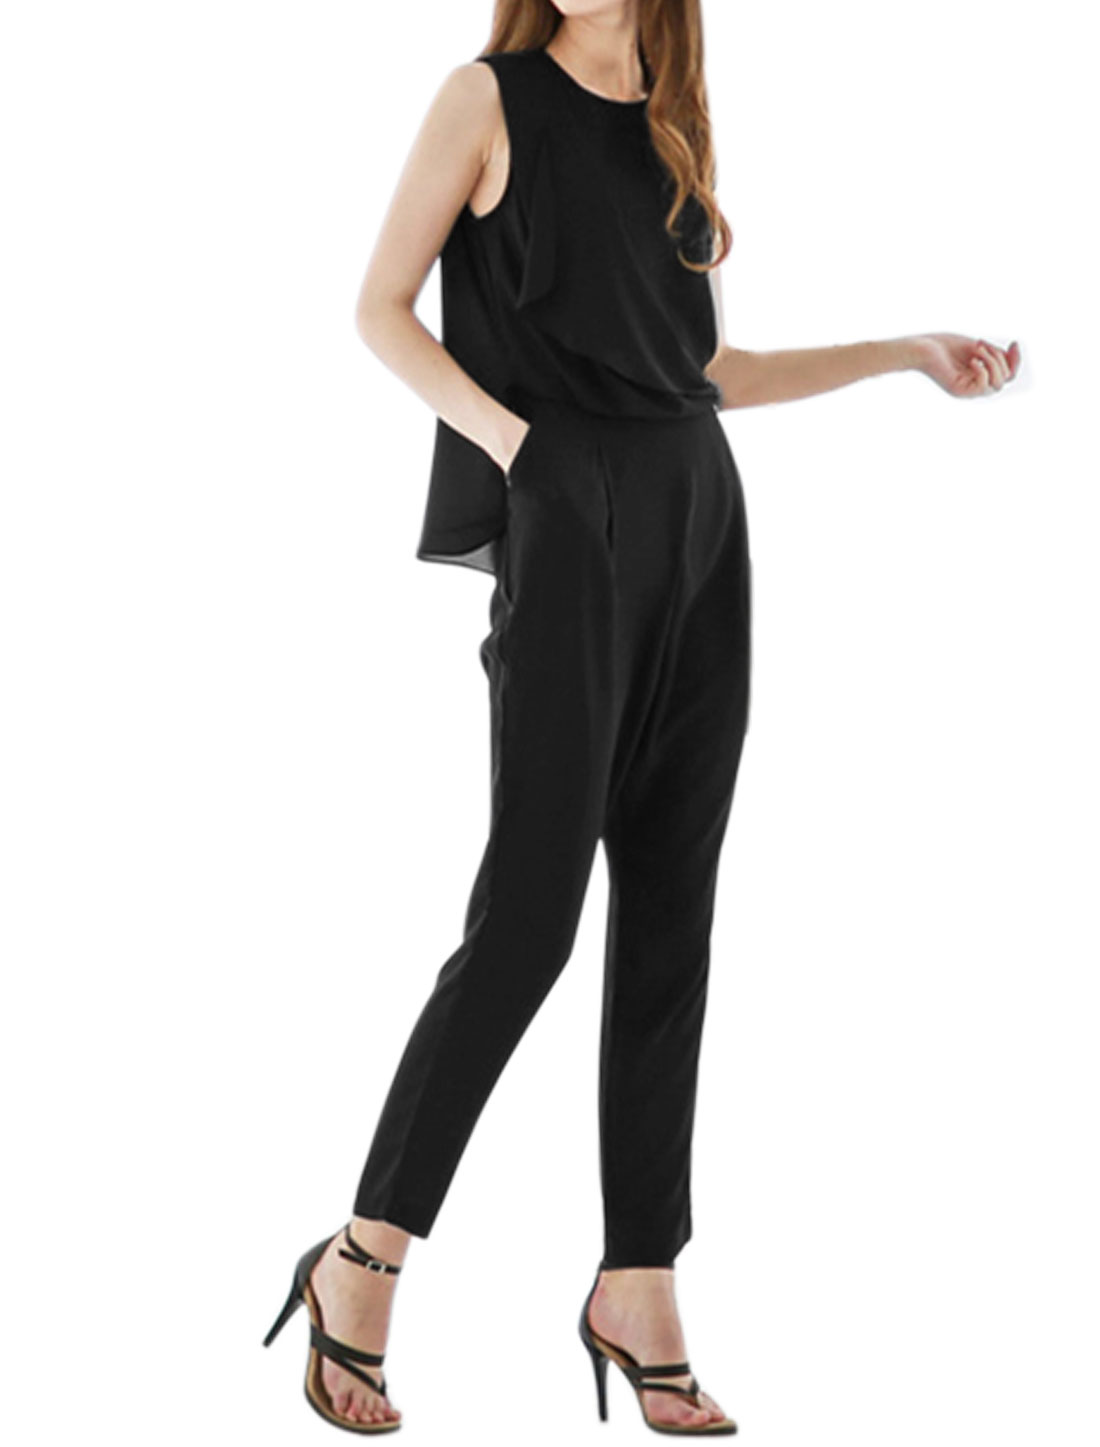 Women Crew Neck Sleeveless Layered Back Overlay Jumpsuit Black XS